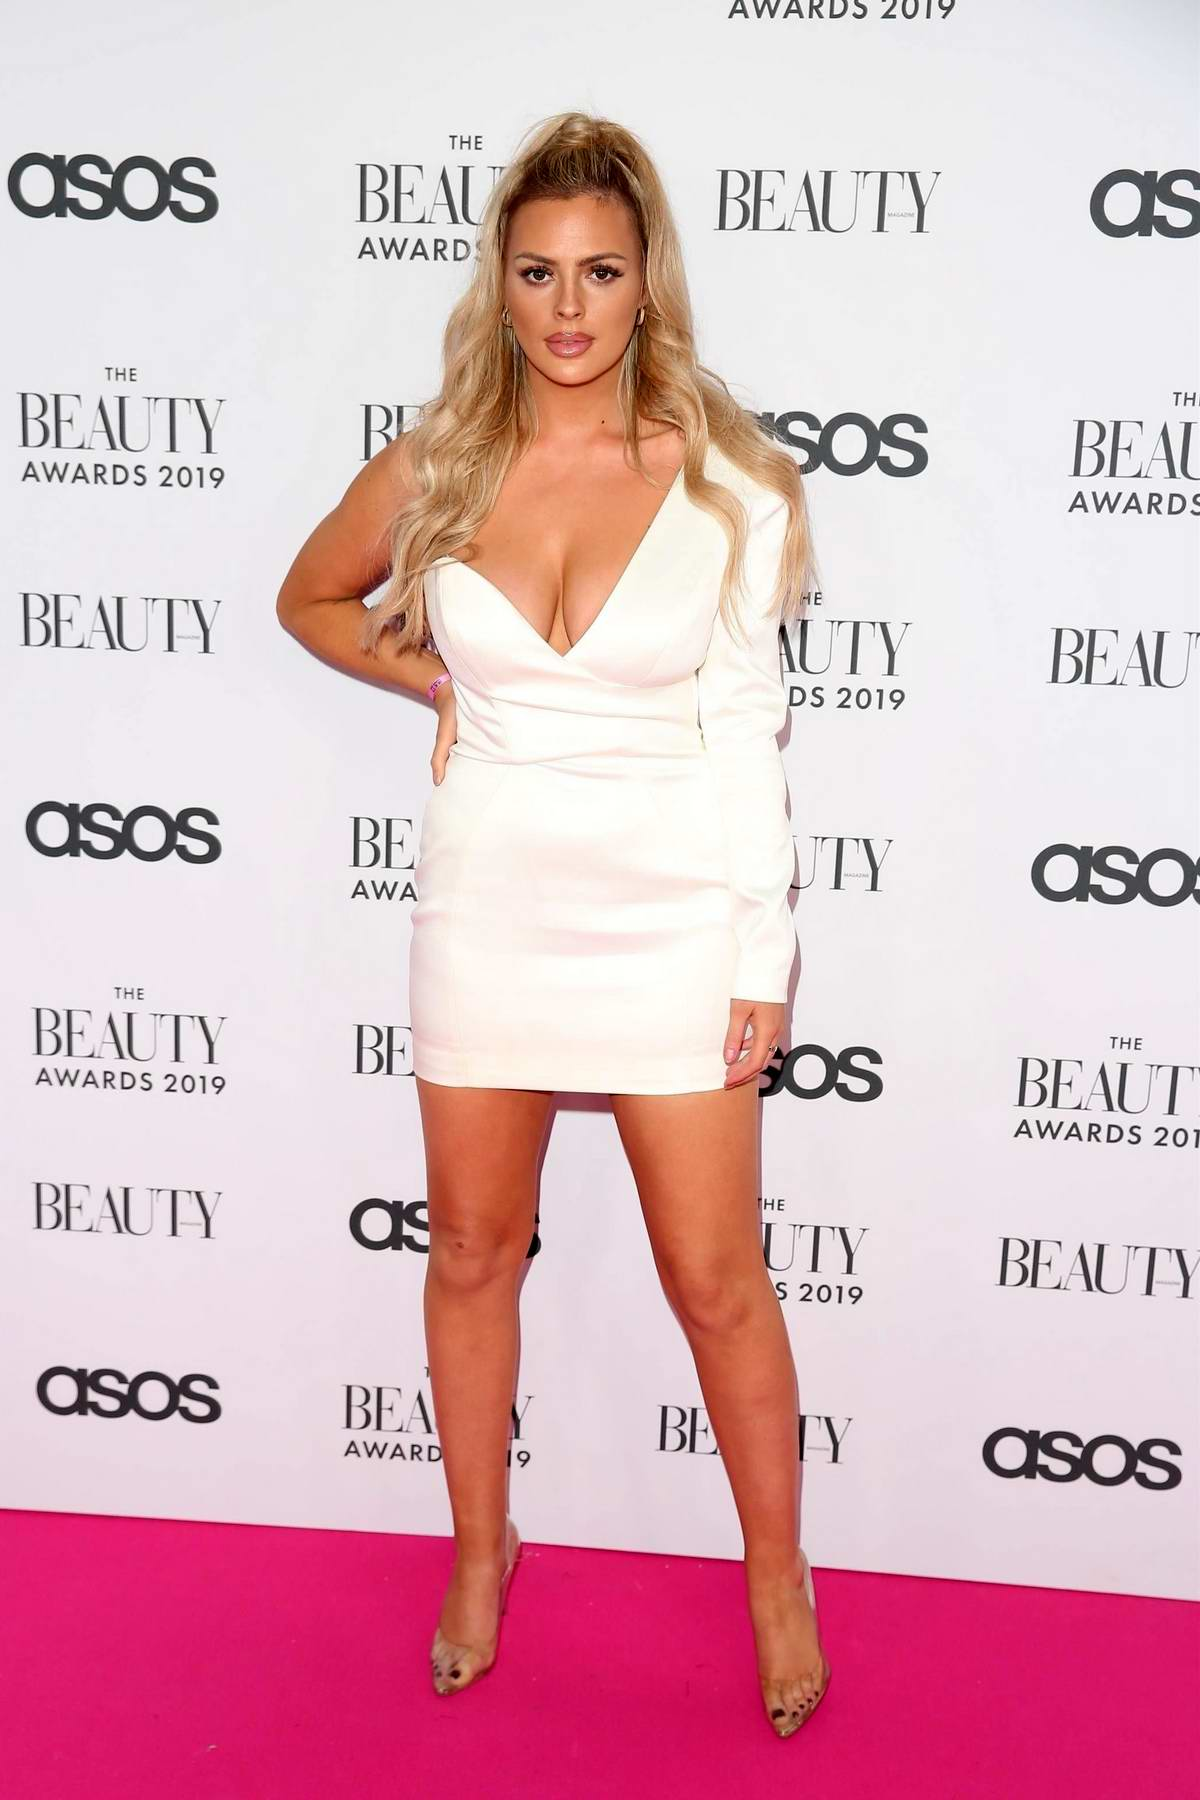 Danielle Sellers attends The Beauty Awards 2019 with ASOS at City Central in London, UK